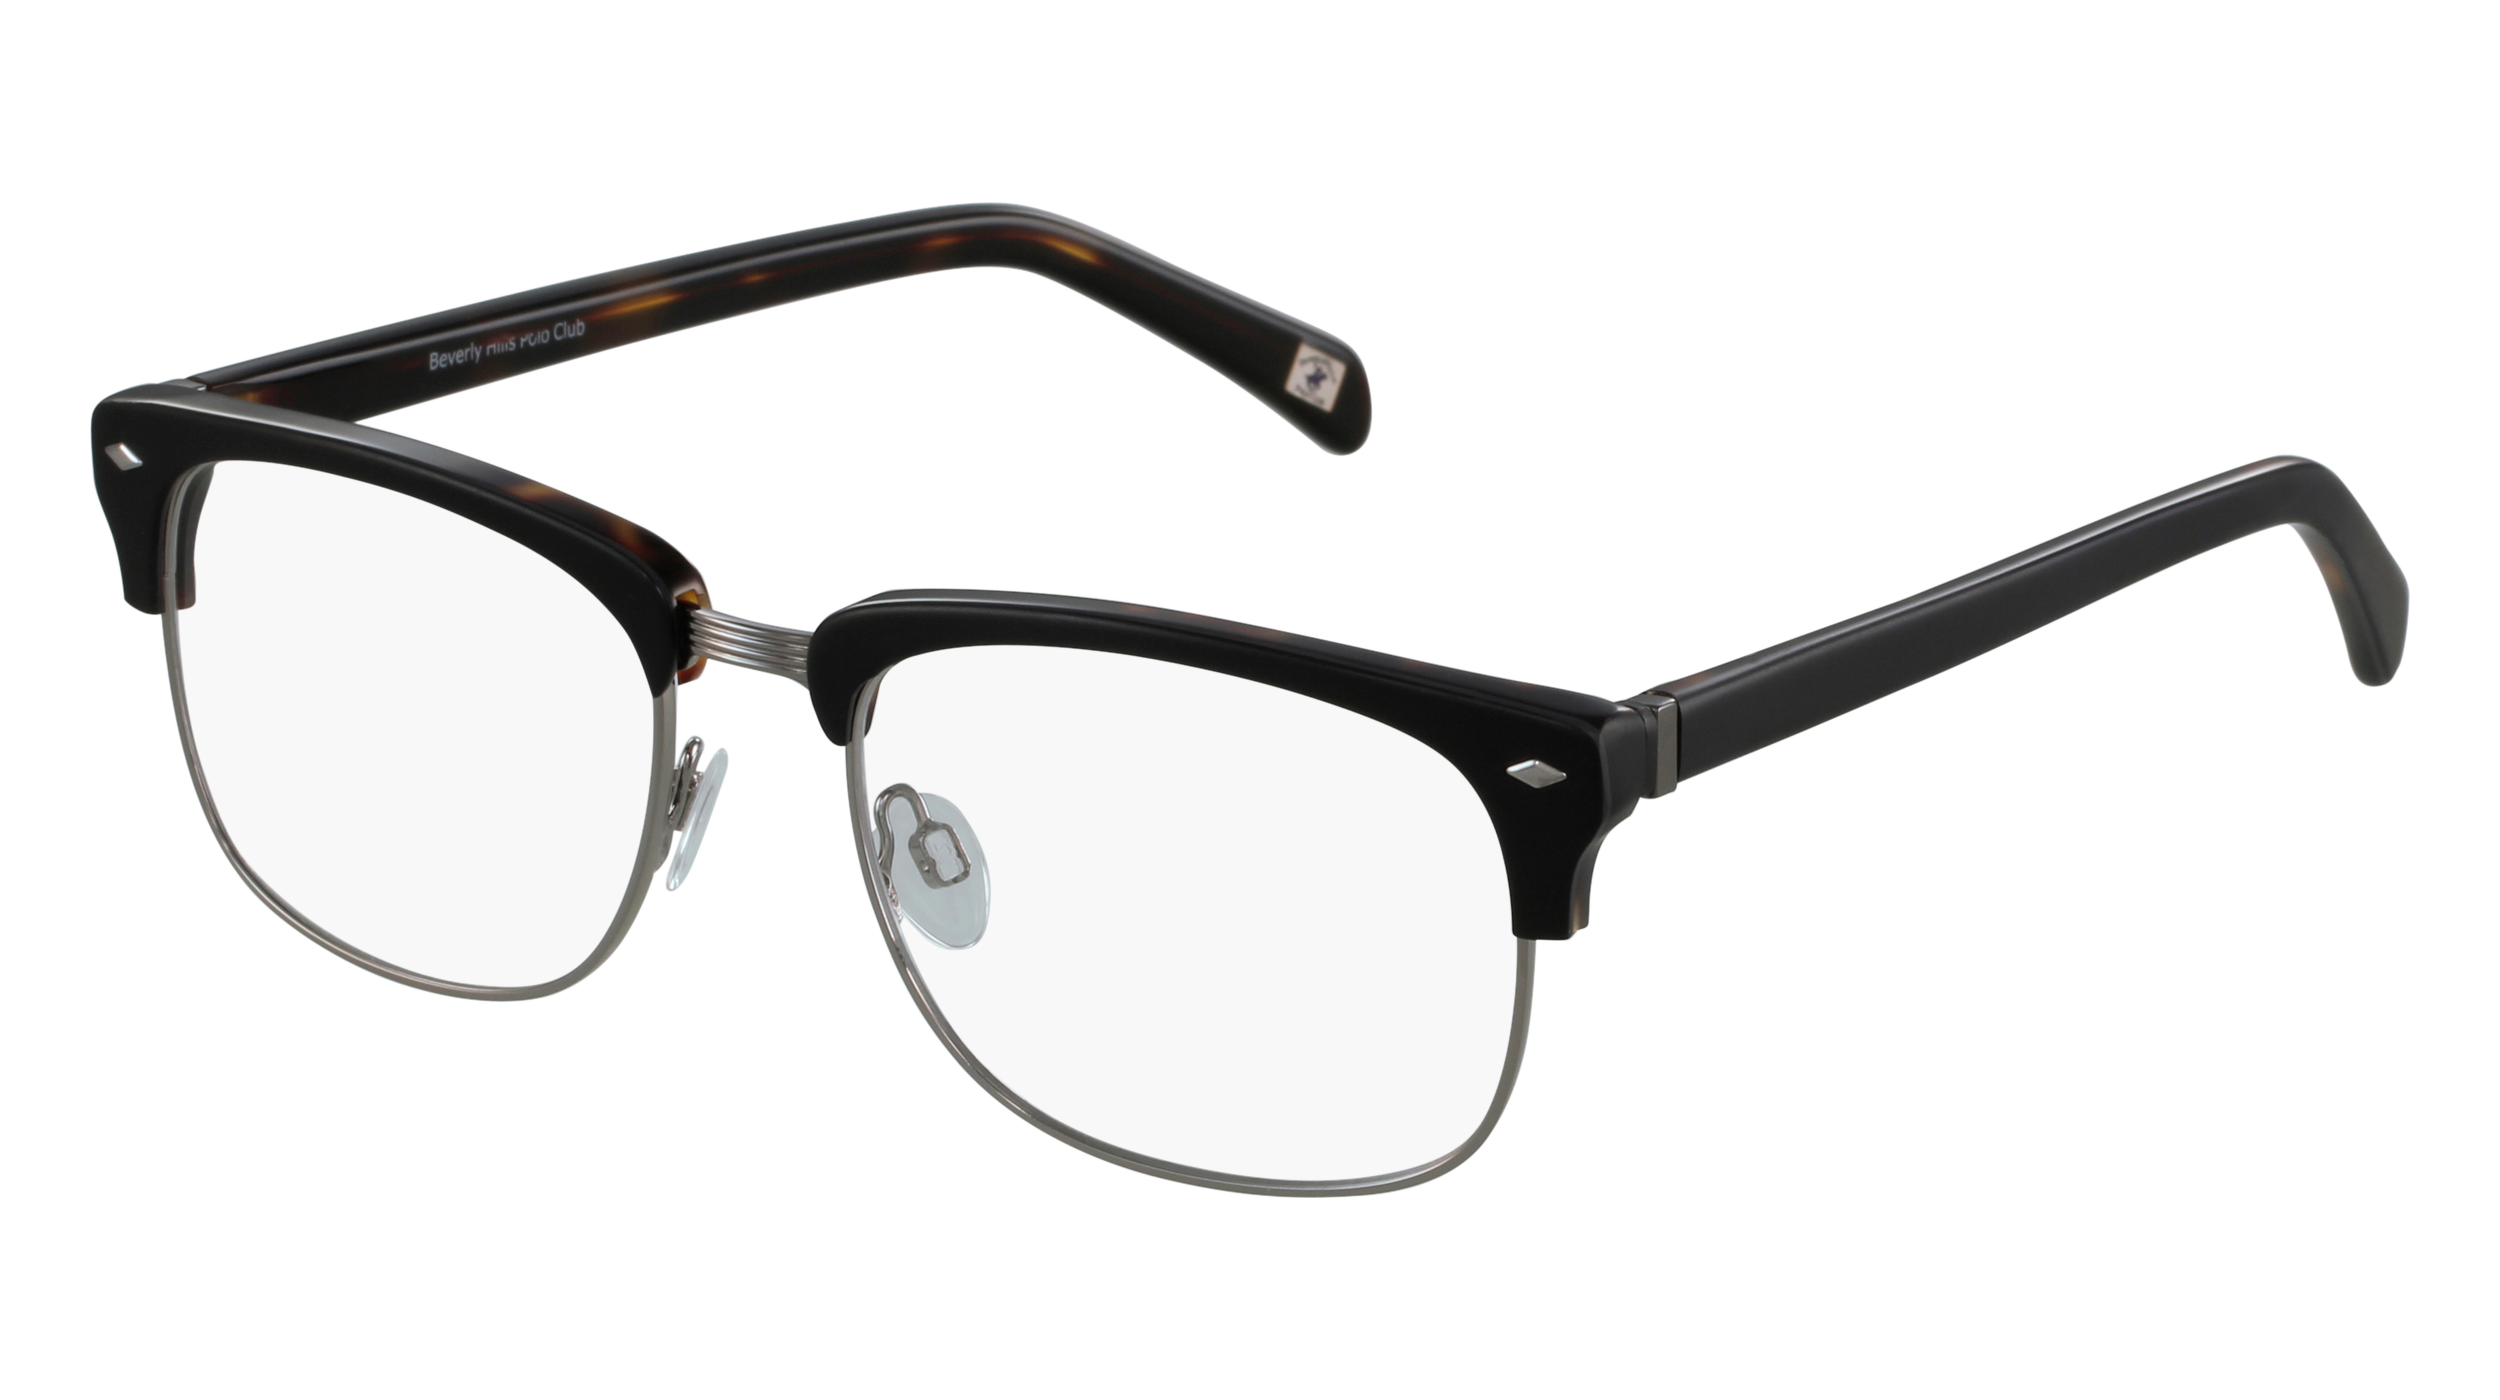 Browline glasses clipart image free download Download Eyeglass Eyeglasses Sunglasses Ray-Ban Browline ... image free download